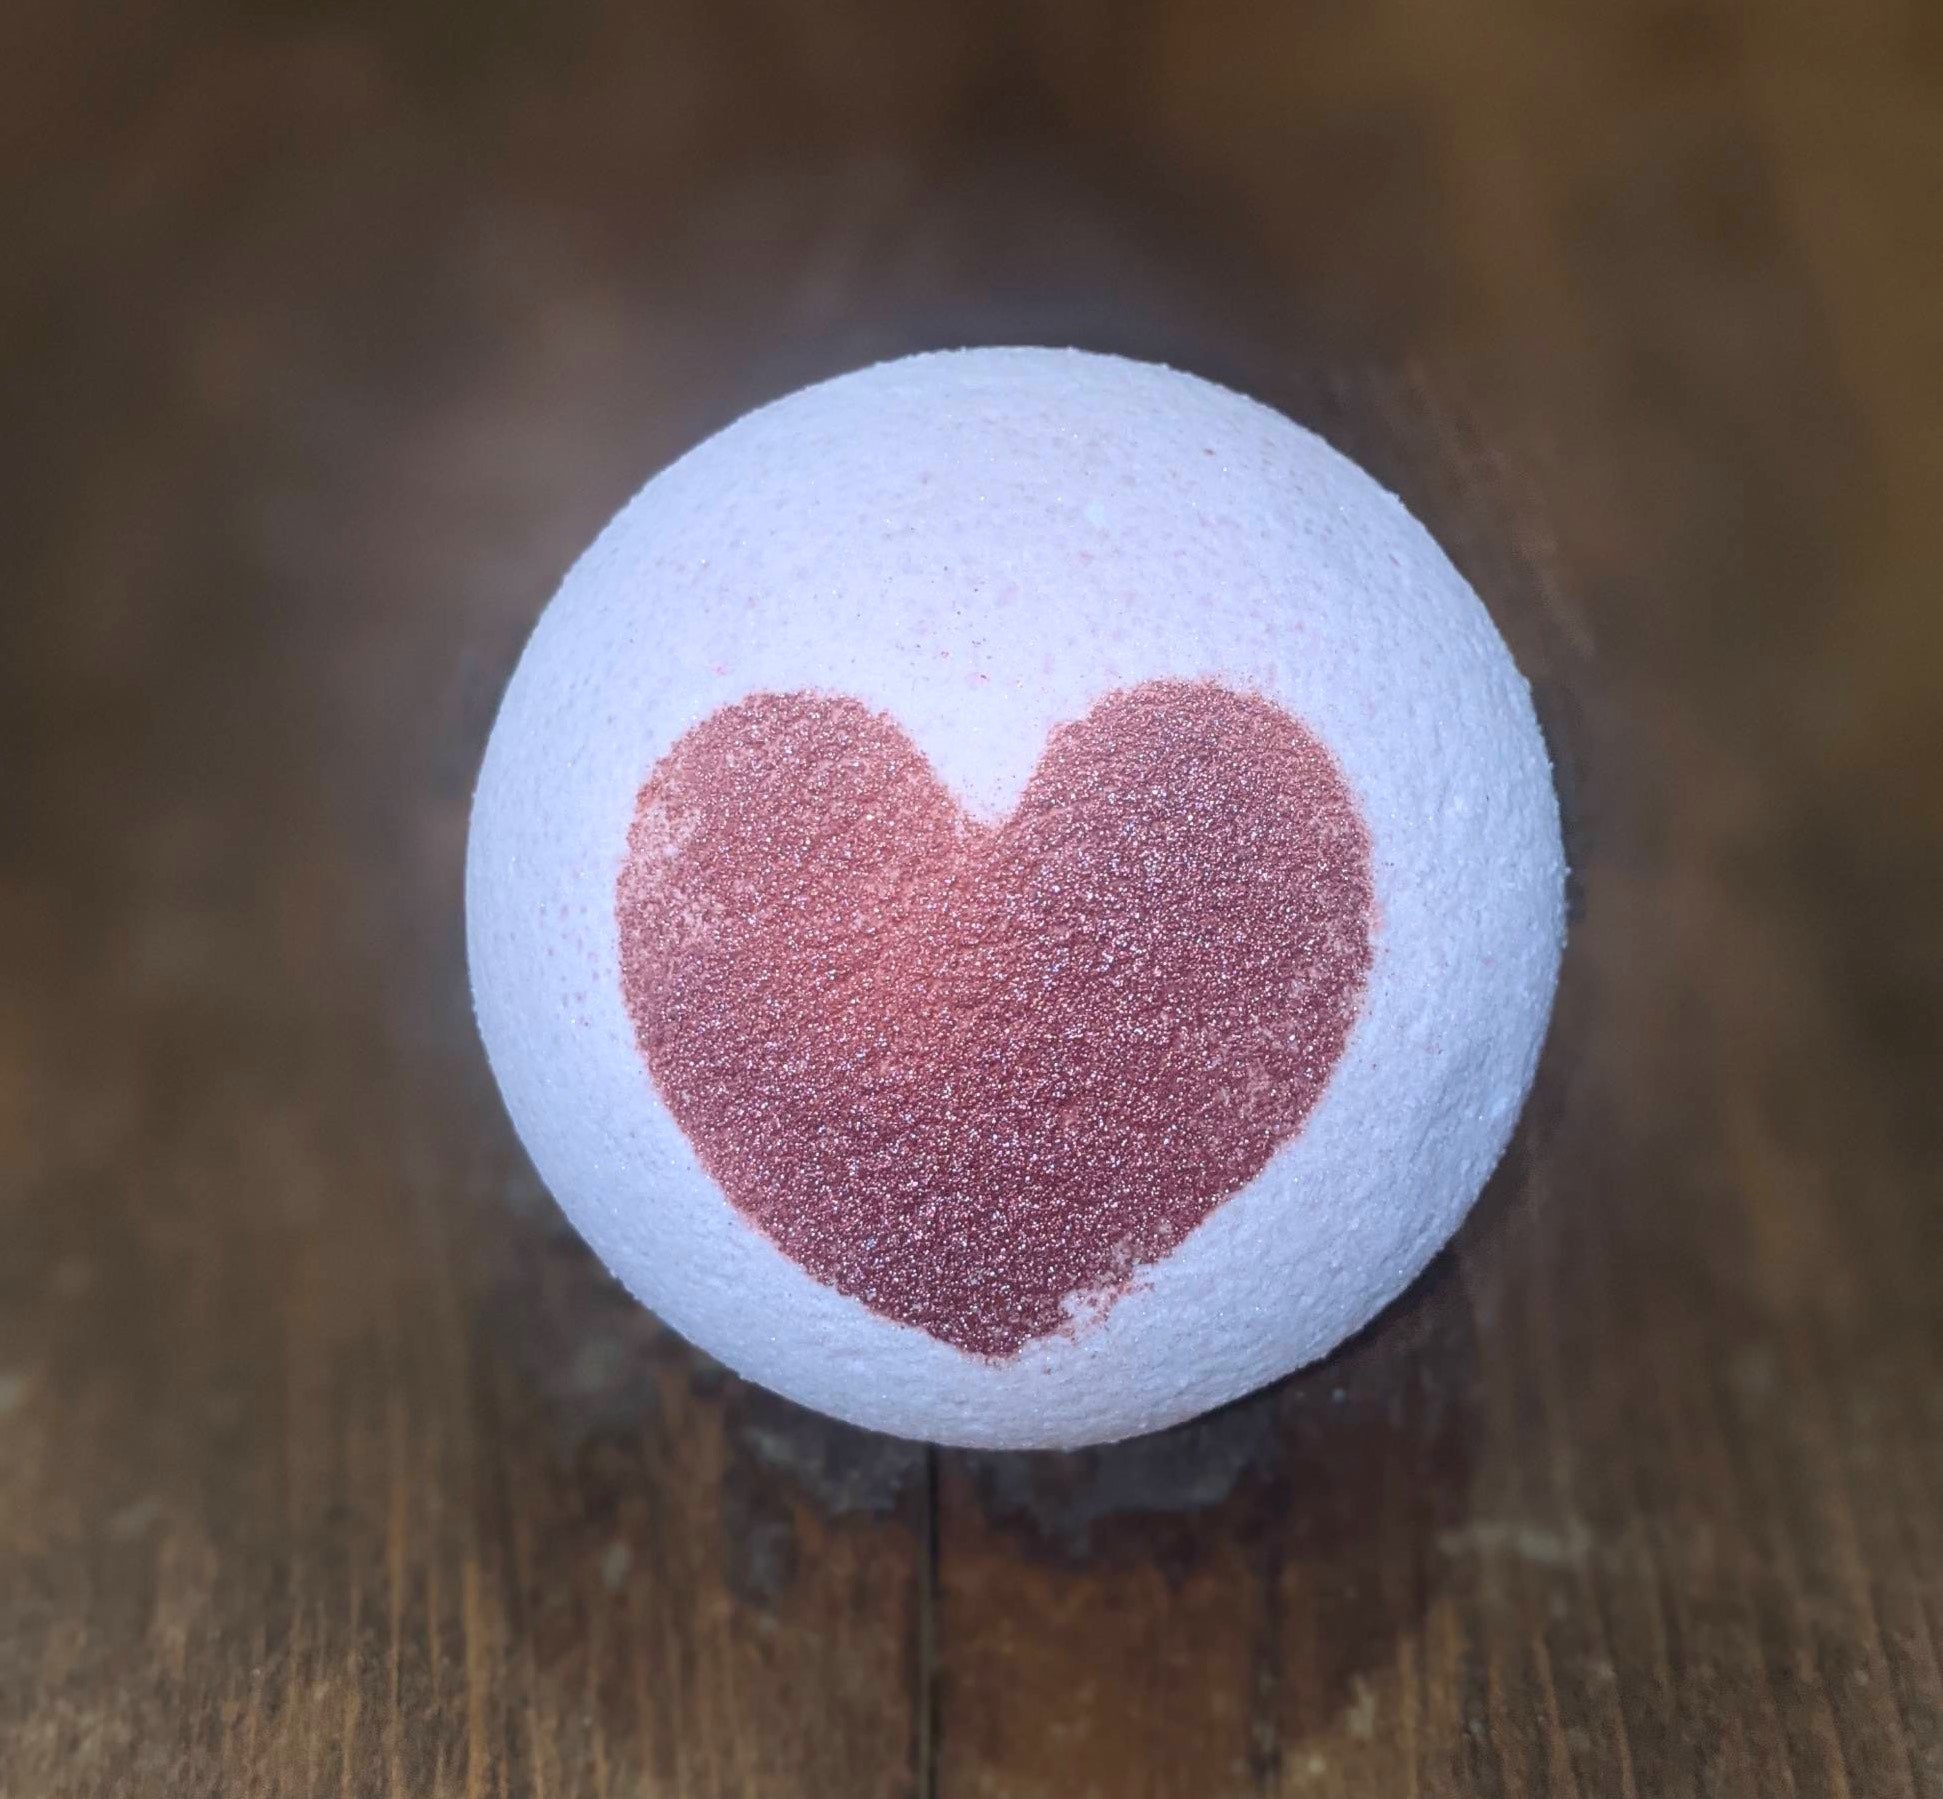 Cupid's Blend Bath Bomb for Valentine's Day